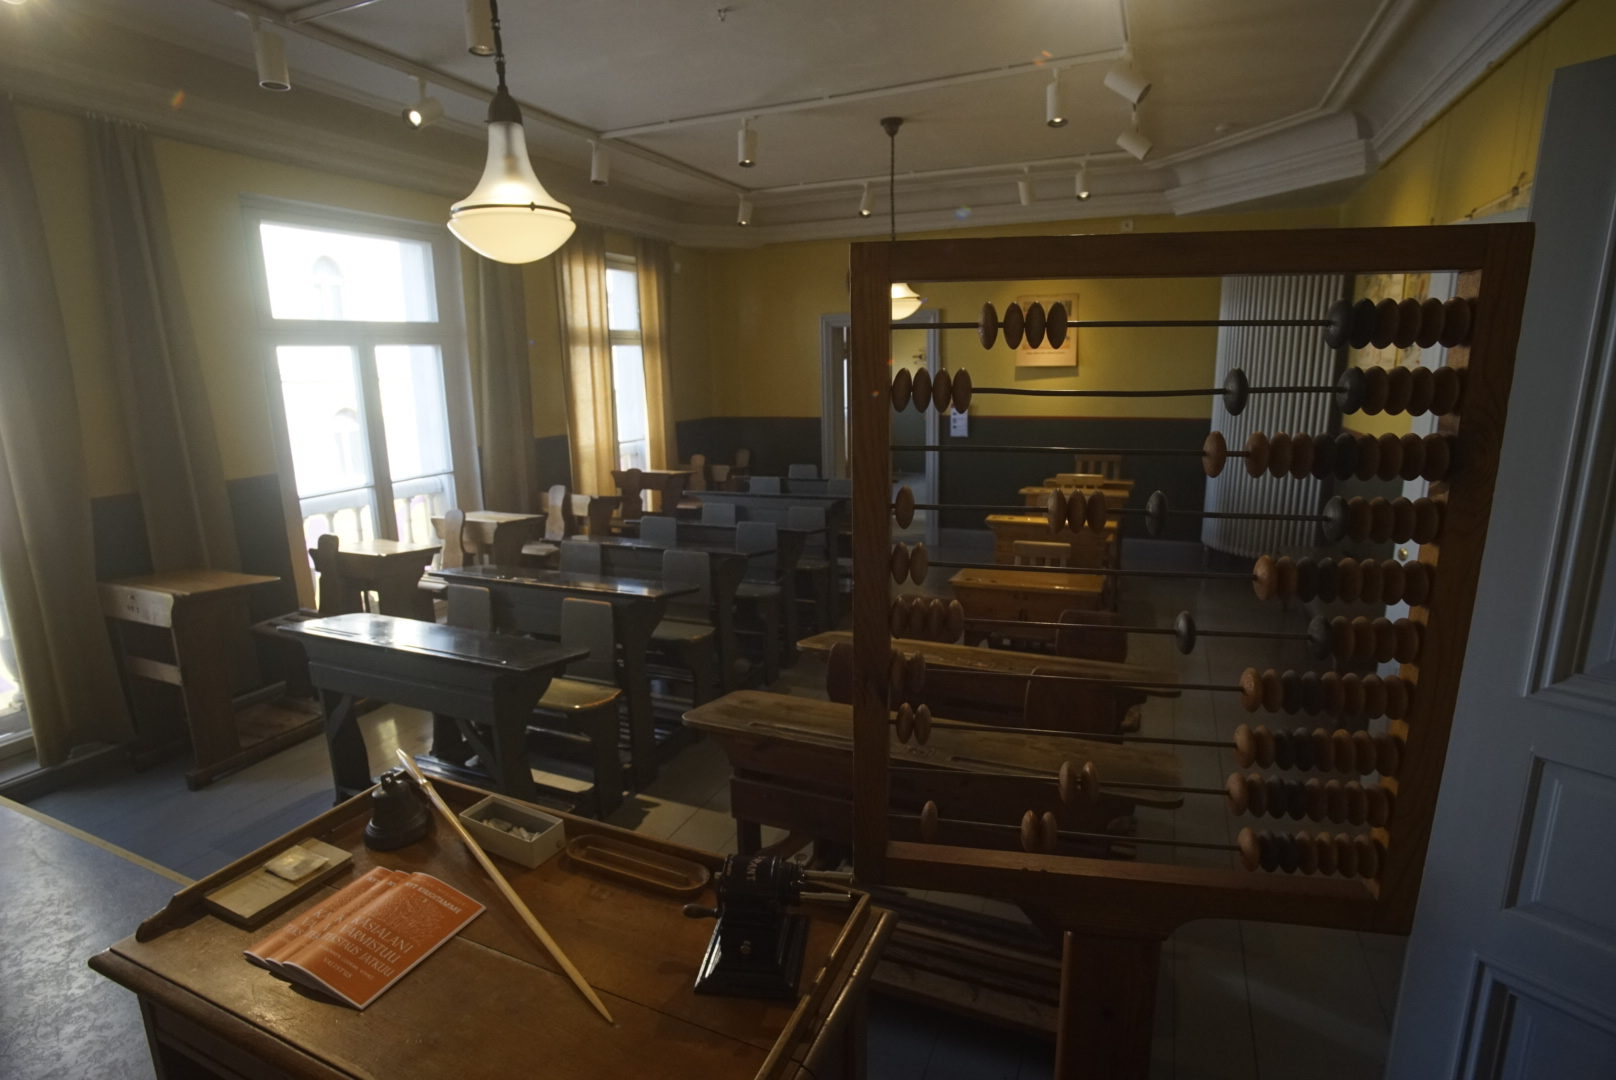 The old classroom. Picture: Morgan Walker for Finland Today